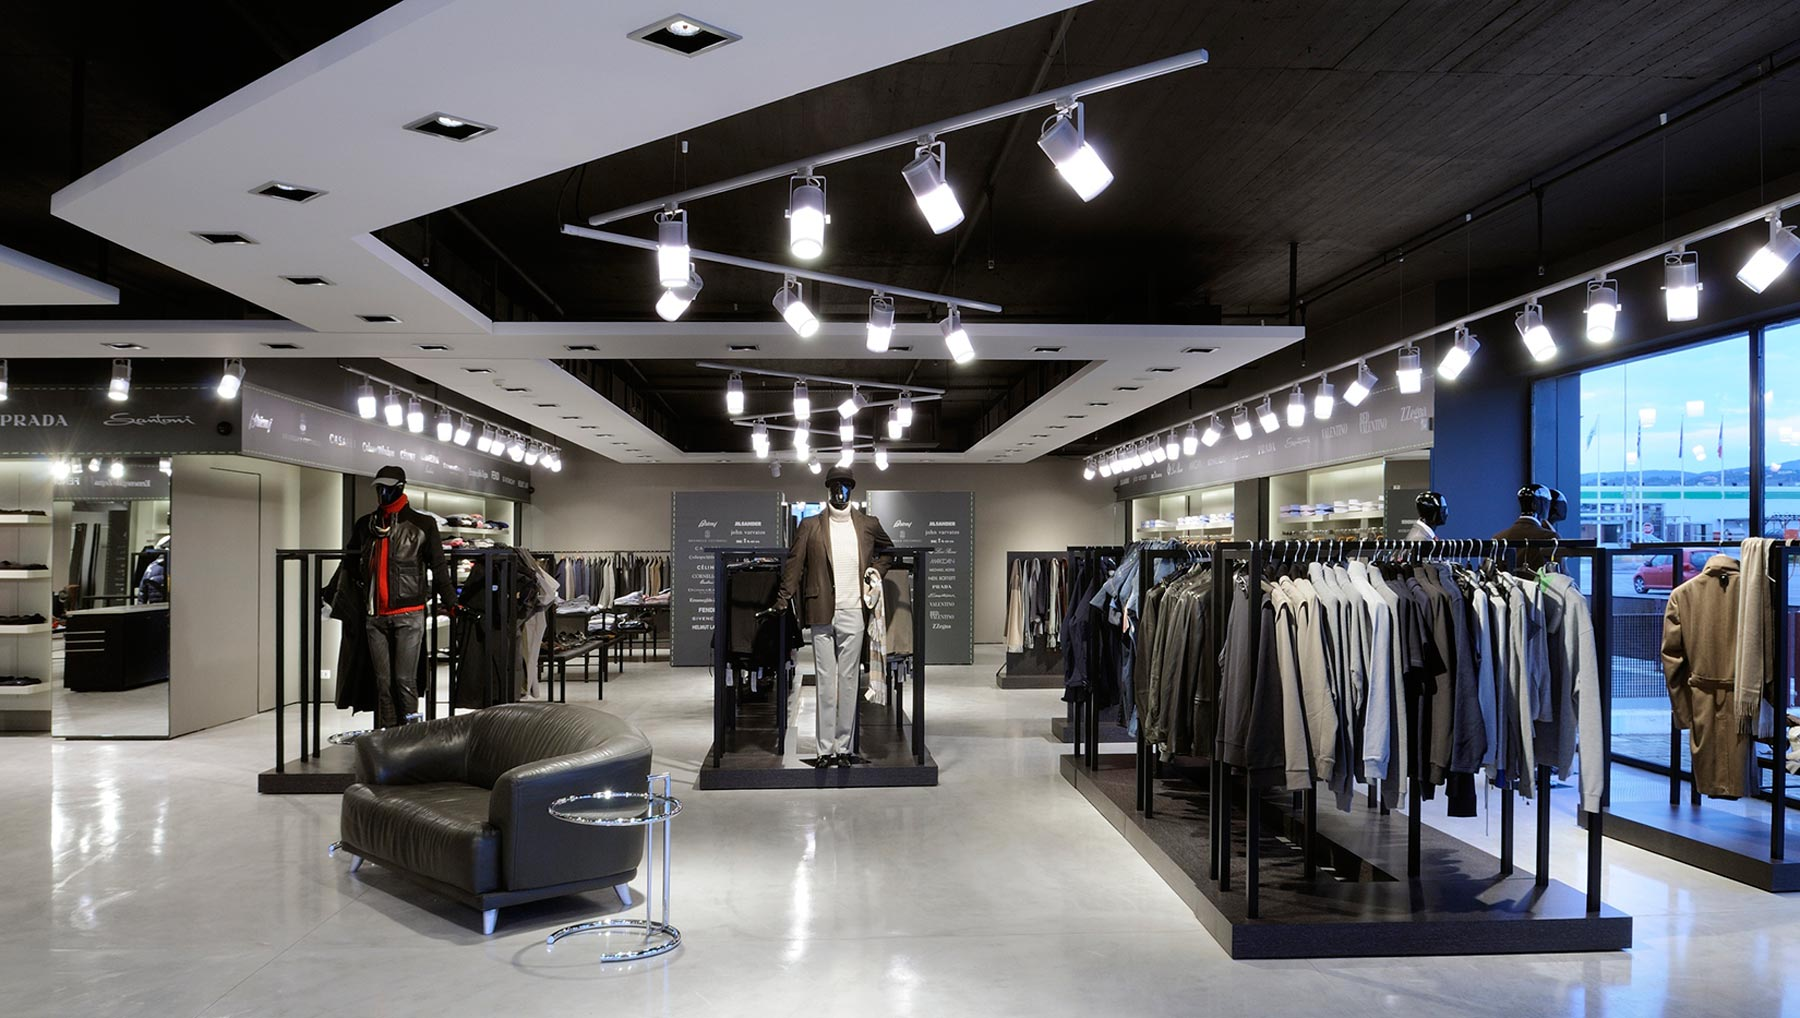 coastal-ceiling-lights-4-retail-lighting-design-1800-x-1018